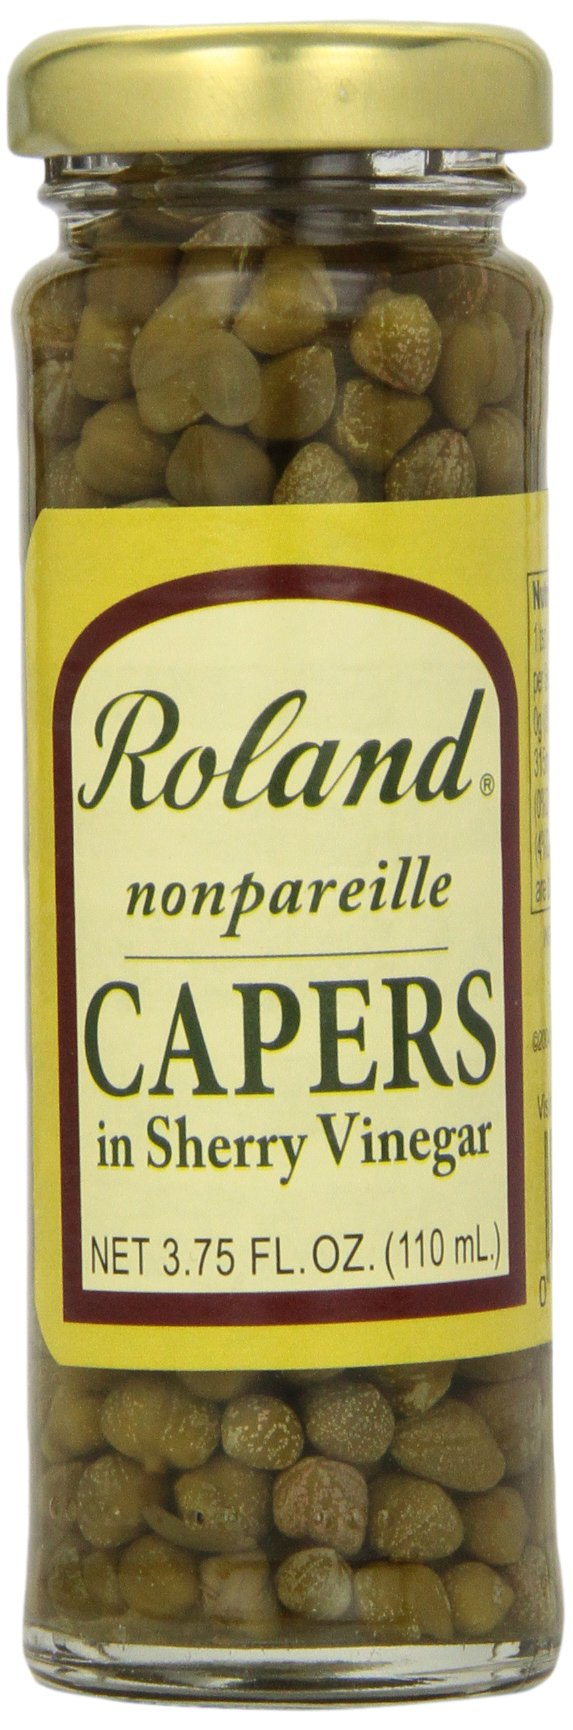 Roland Nonpareille Capers, in Sherry Vinegar, 3.75 Ounce (Pack of 12)